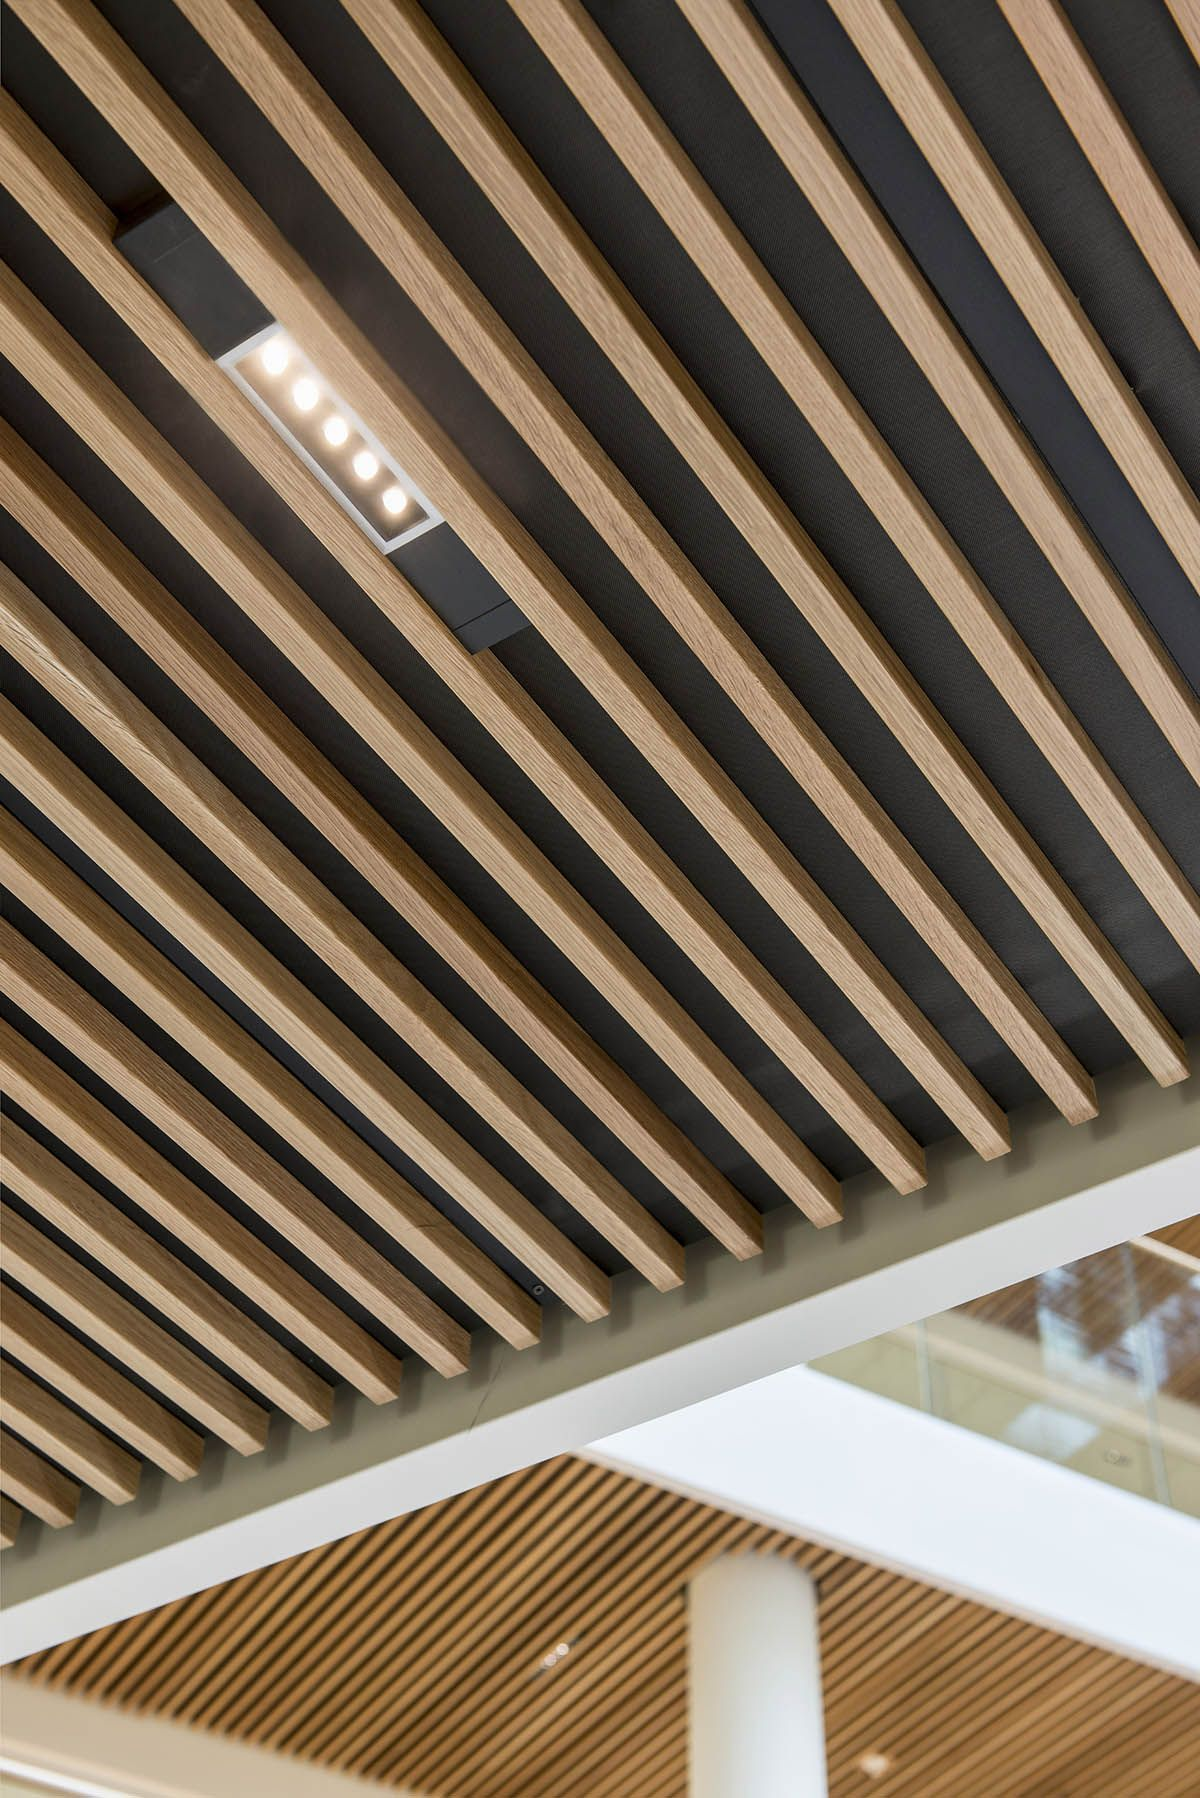 Project Gallery Timber Ceiling Wooden Ceiling Design Wood Slat